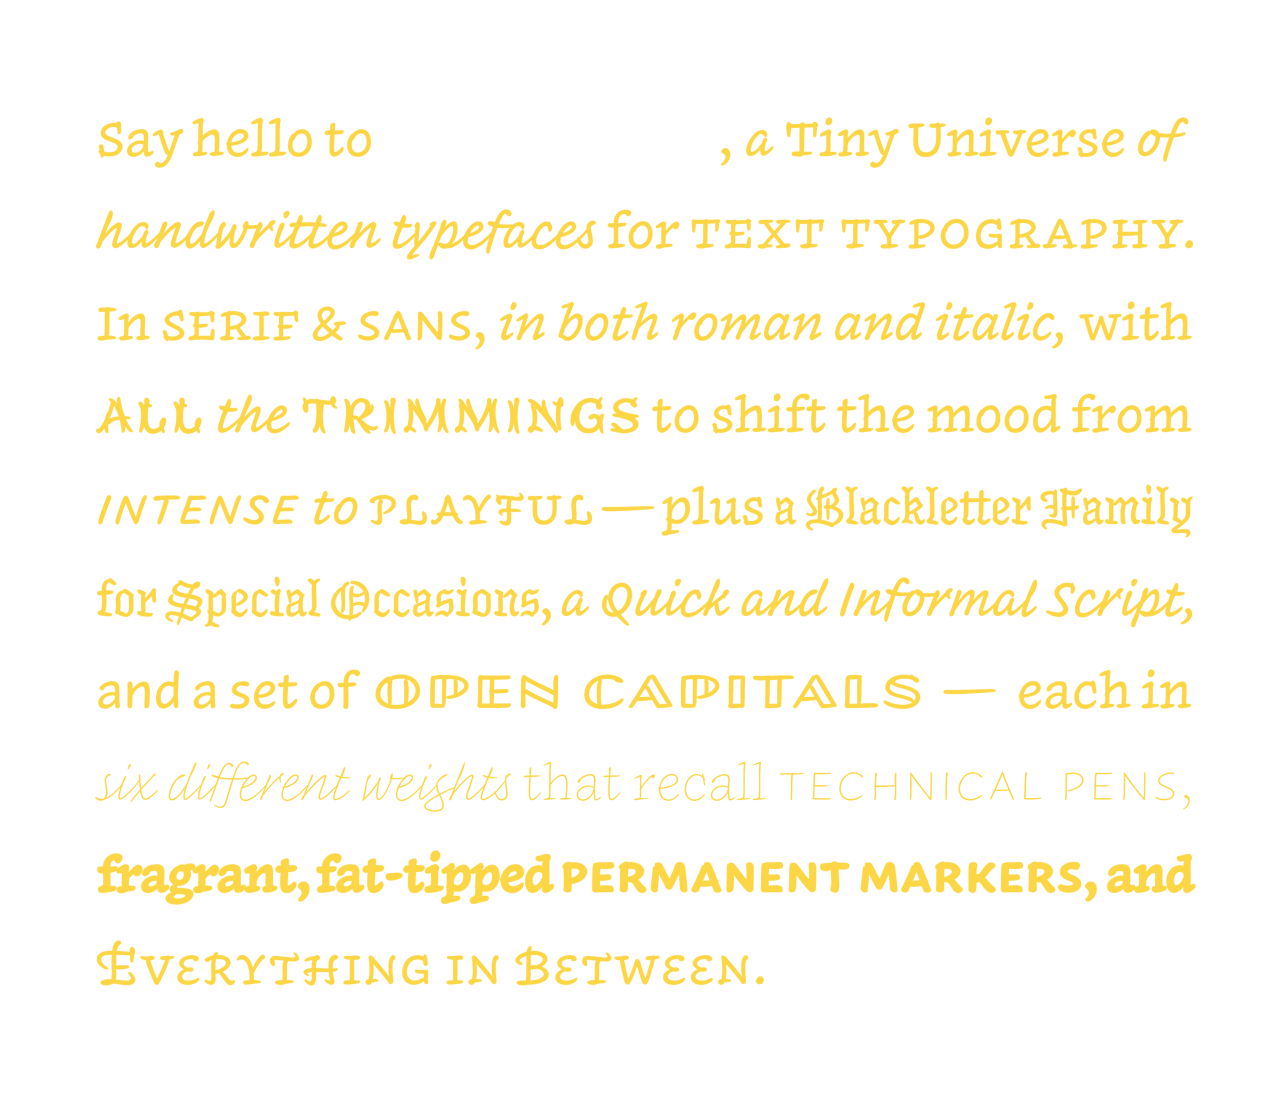 Meet INKWELL, the new font family from H&Co